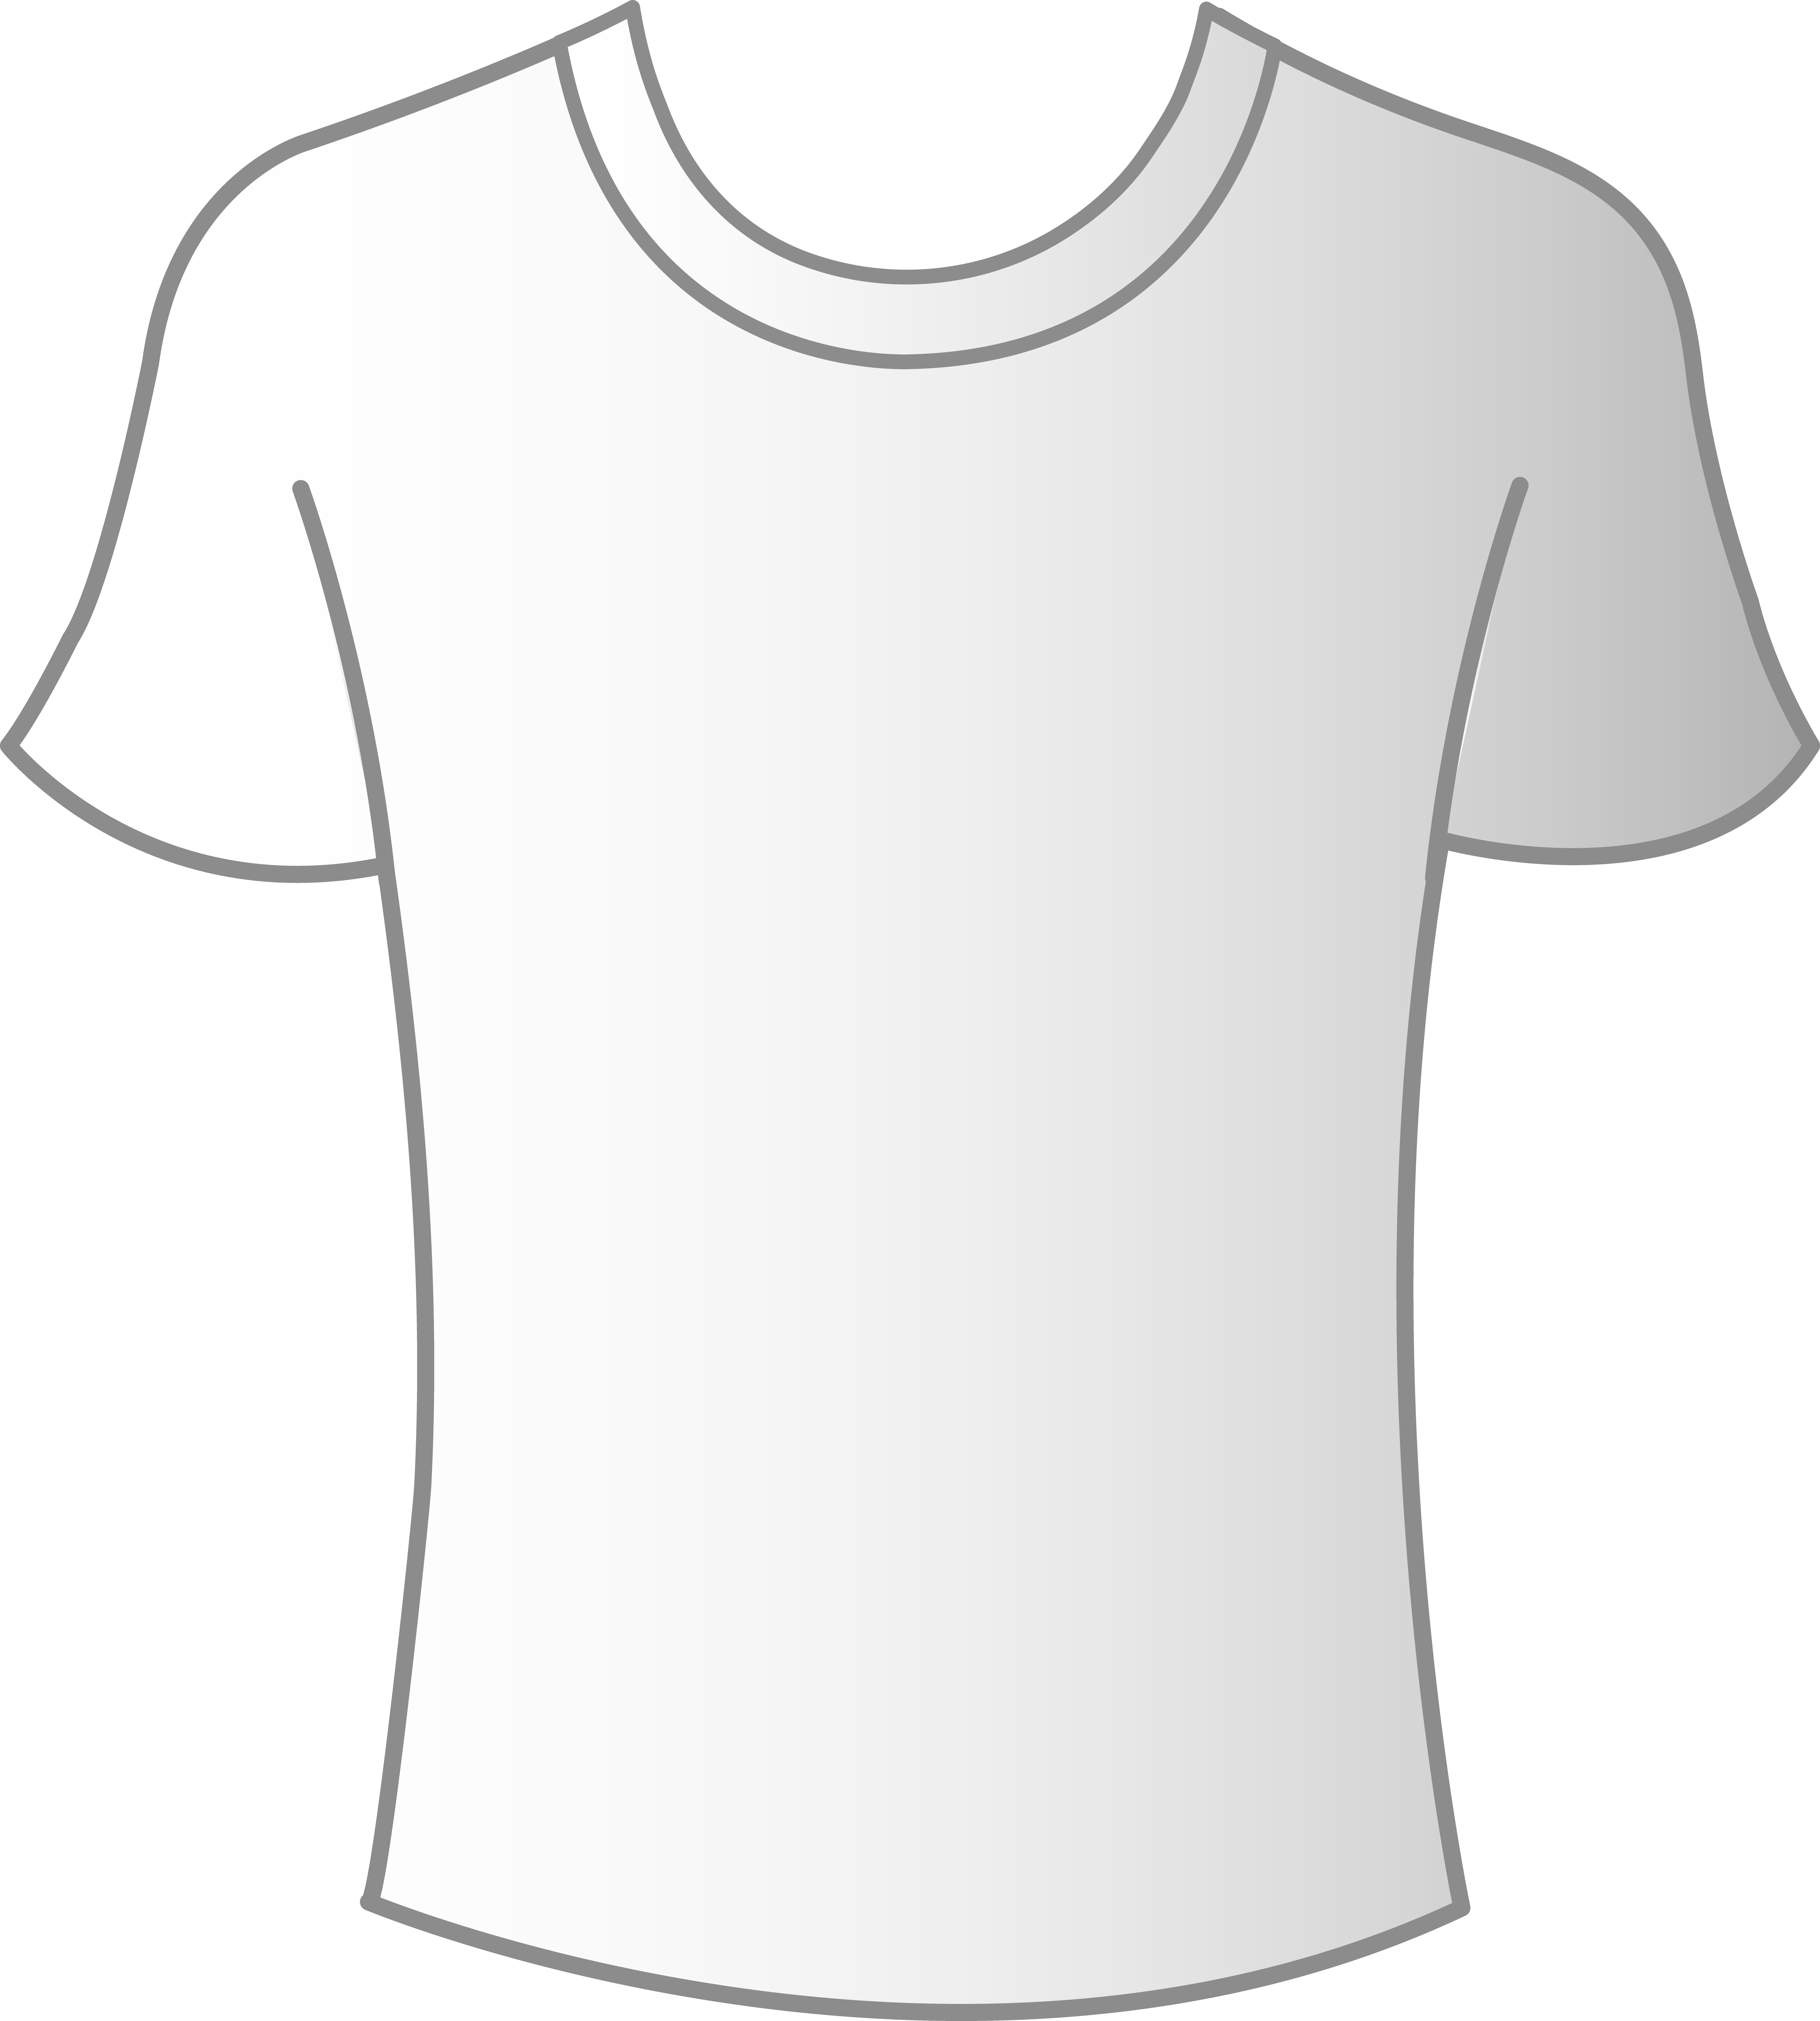 T Shirt Printing Templates Free Download Clip Art Free